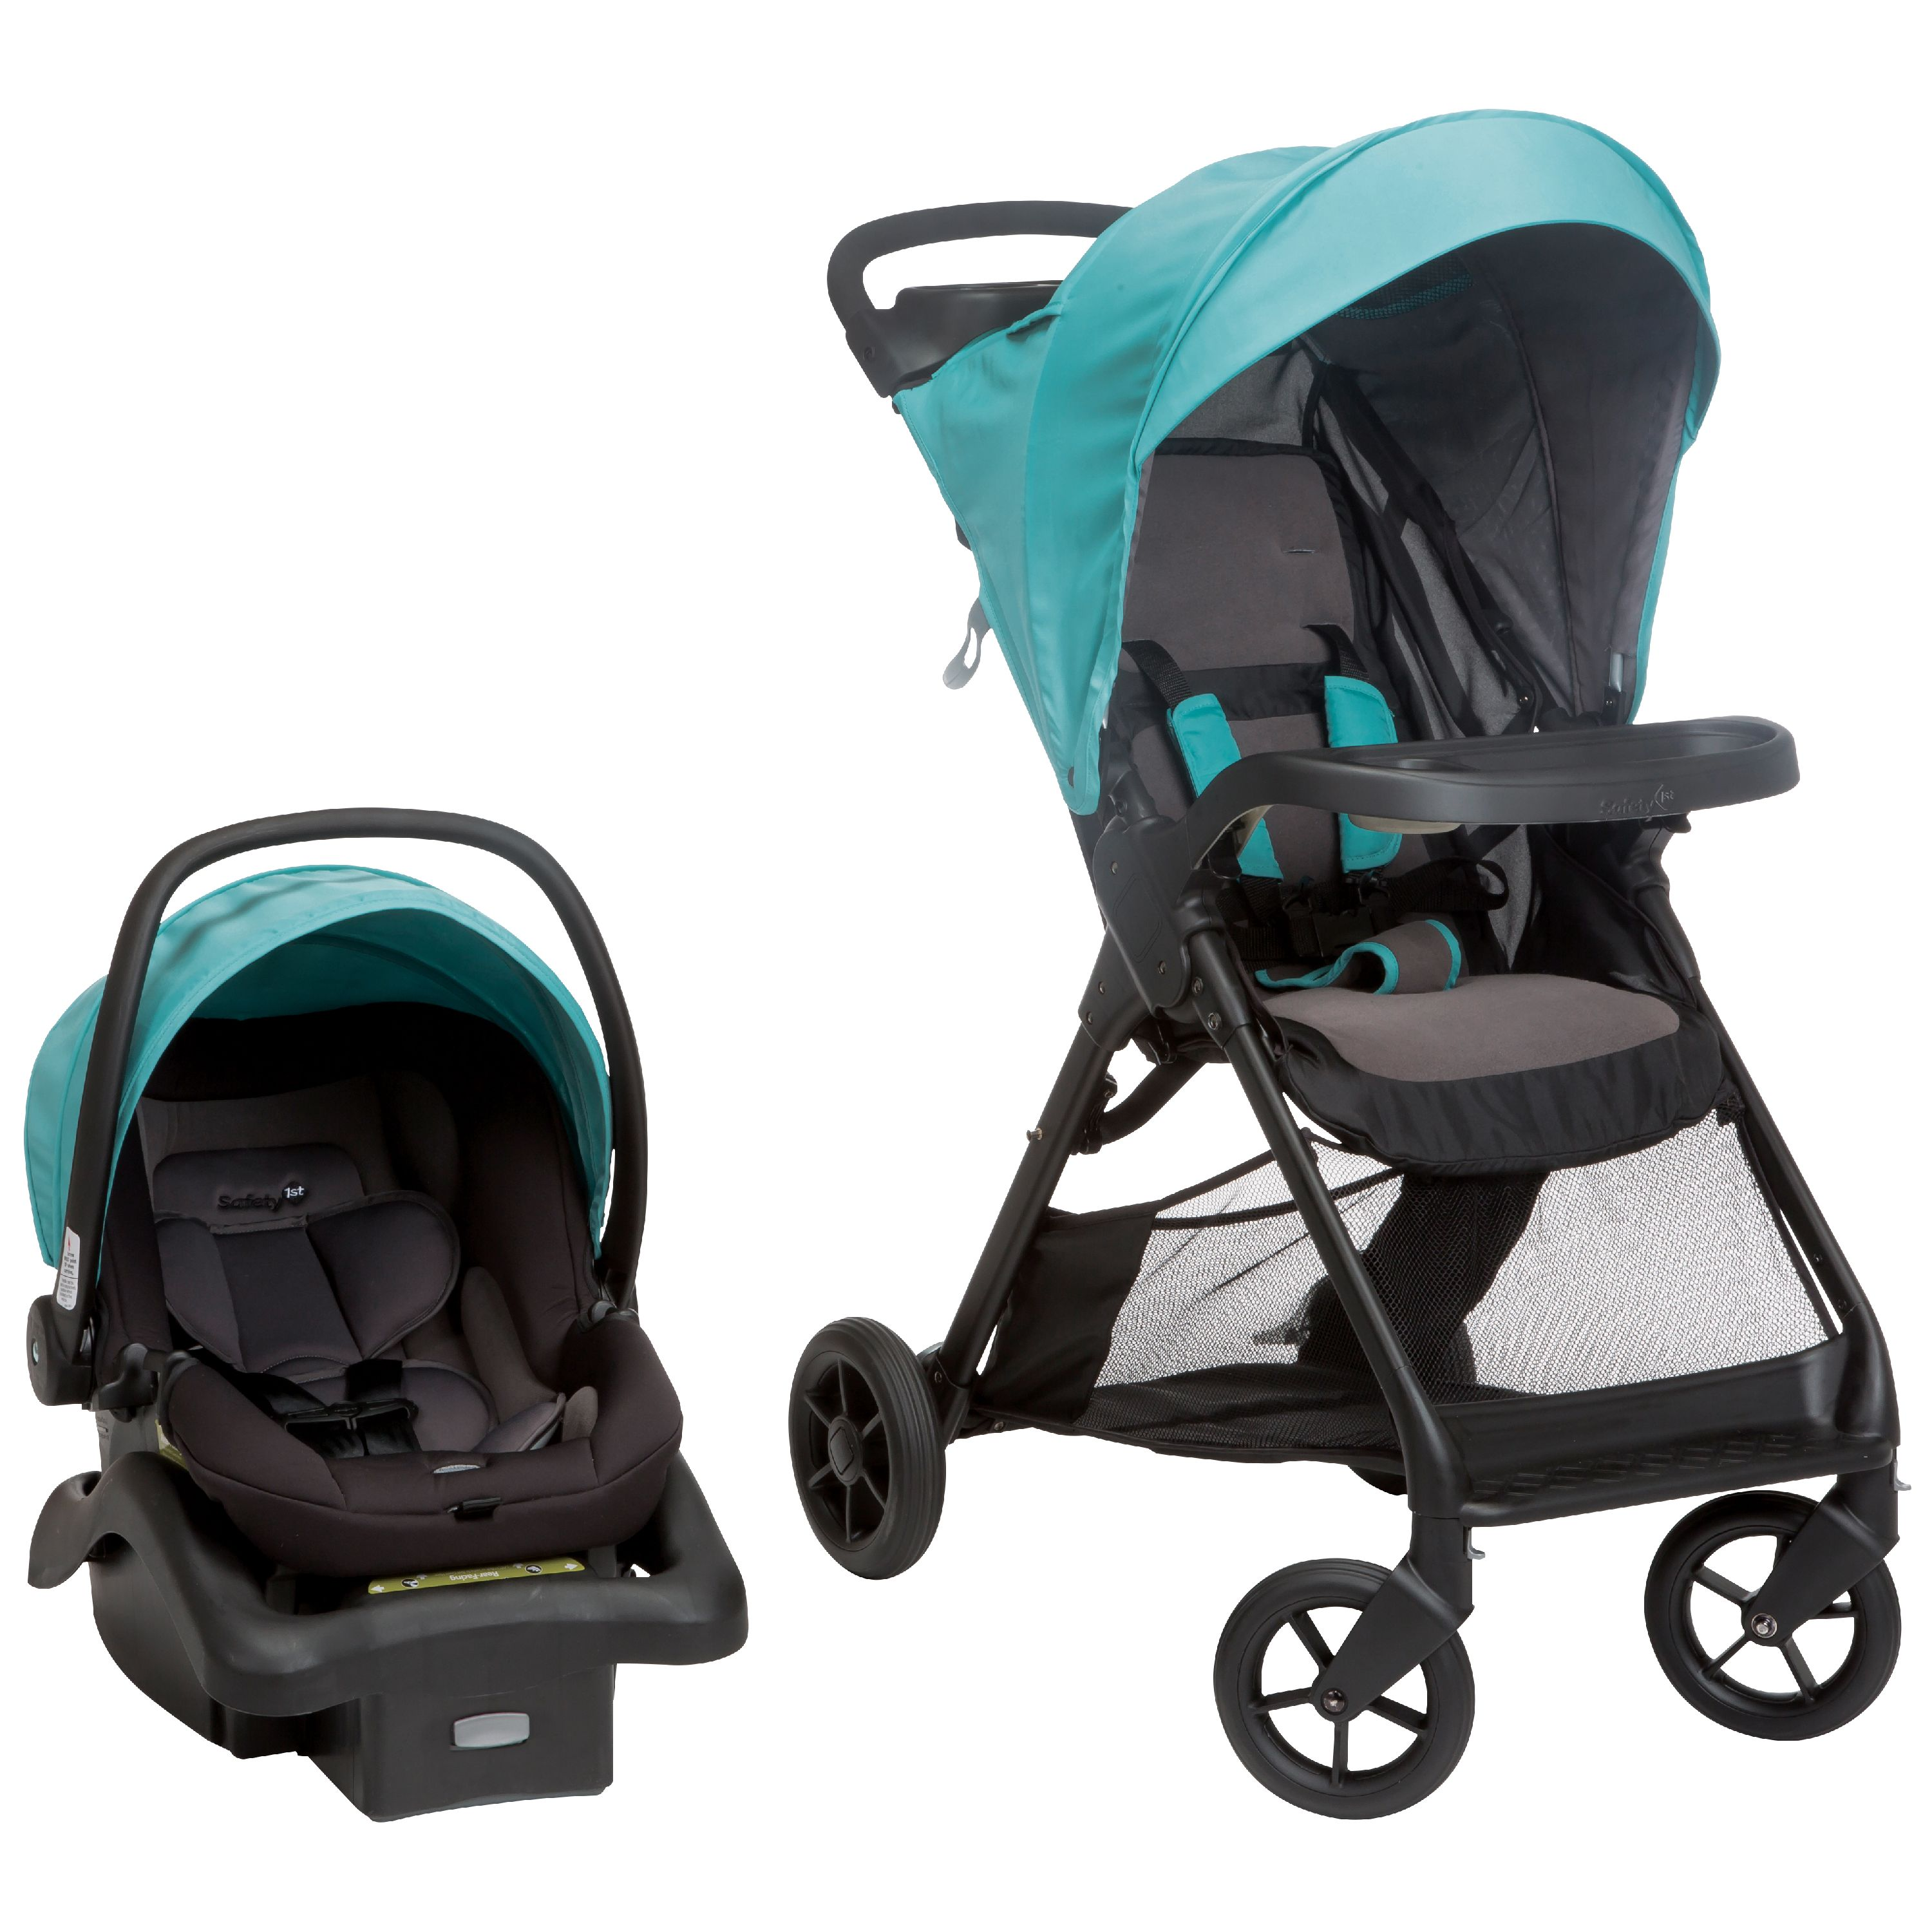 Safety 1ˢᵗ Smooth Ride Travel System, Waterfall